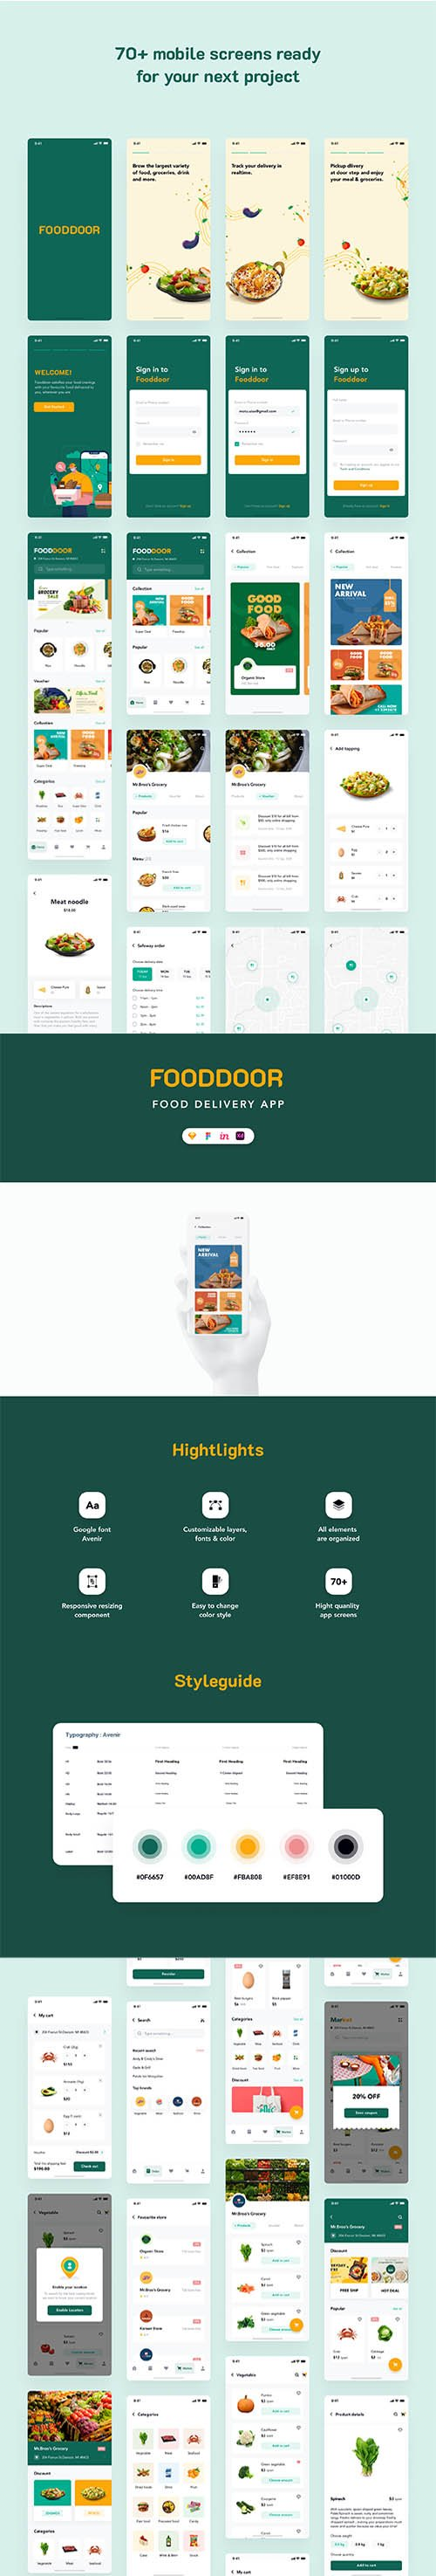 Fooddoor - Food delivery app